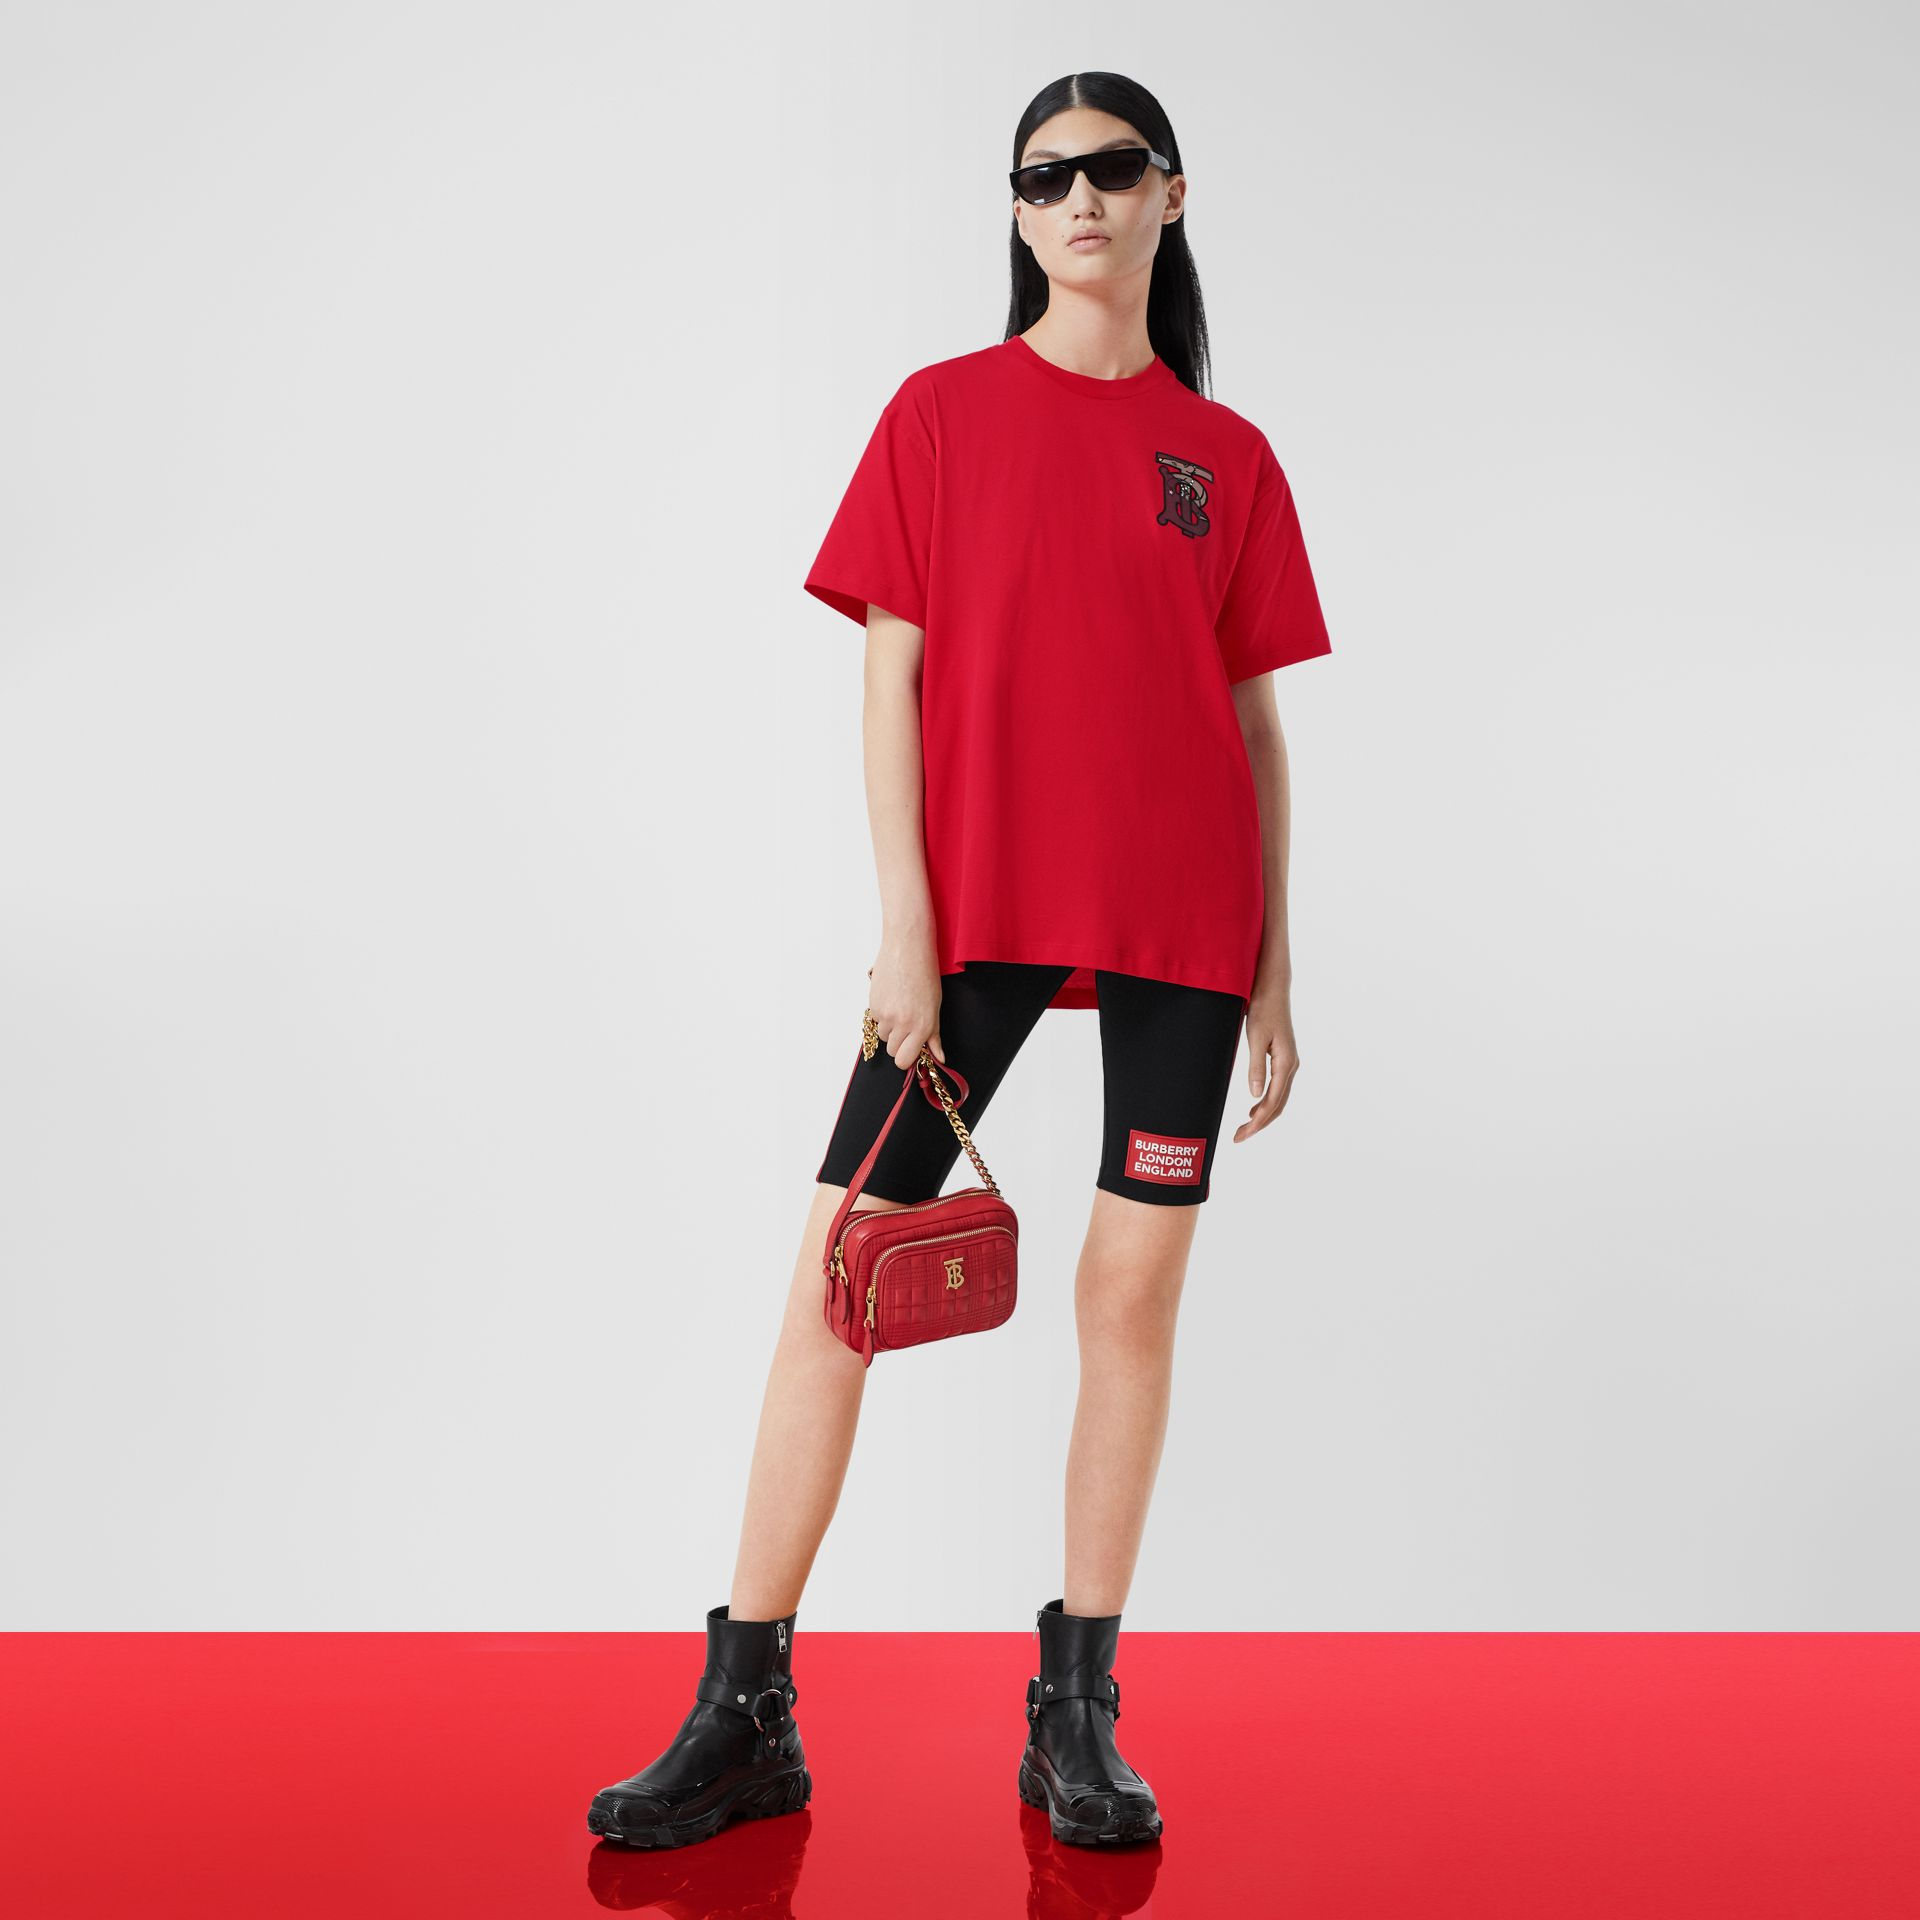 Monogram Motif Cotton Oversized T-shirt in Bright Red - Women | Burberry - gallery image 5